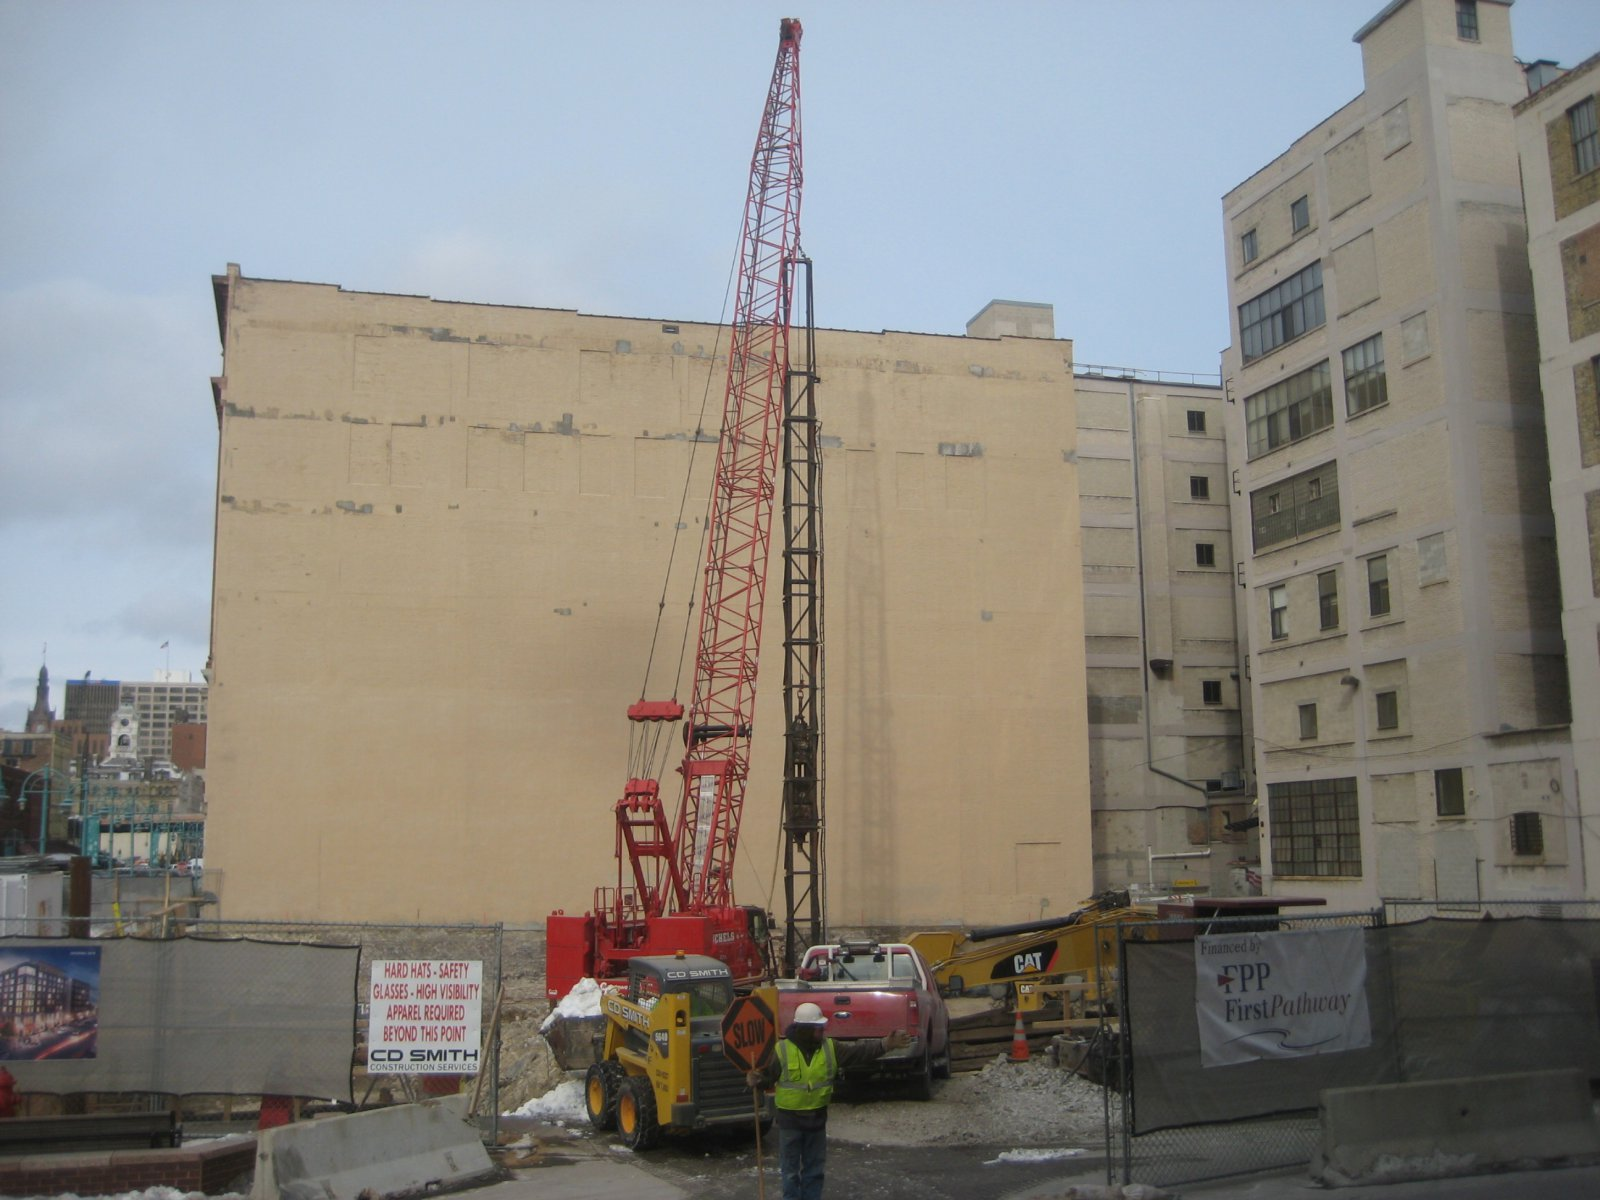 The Kimpton Hotel is under construction in the Third Ward.